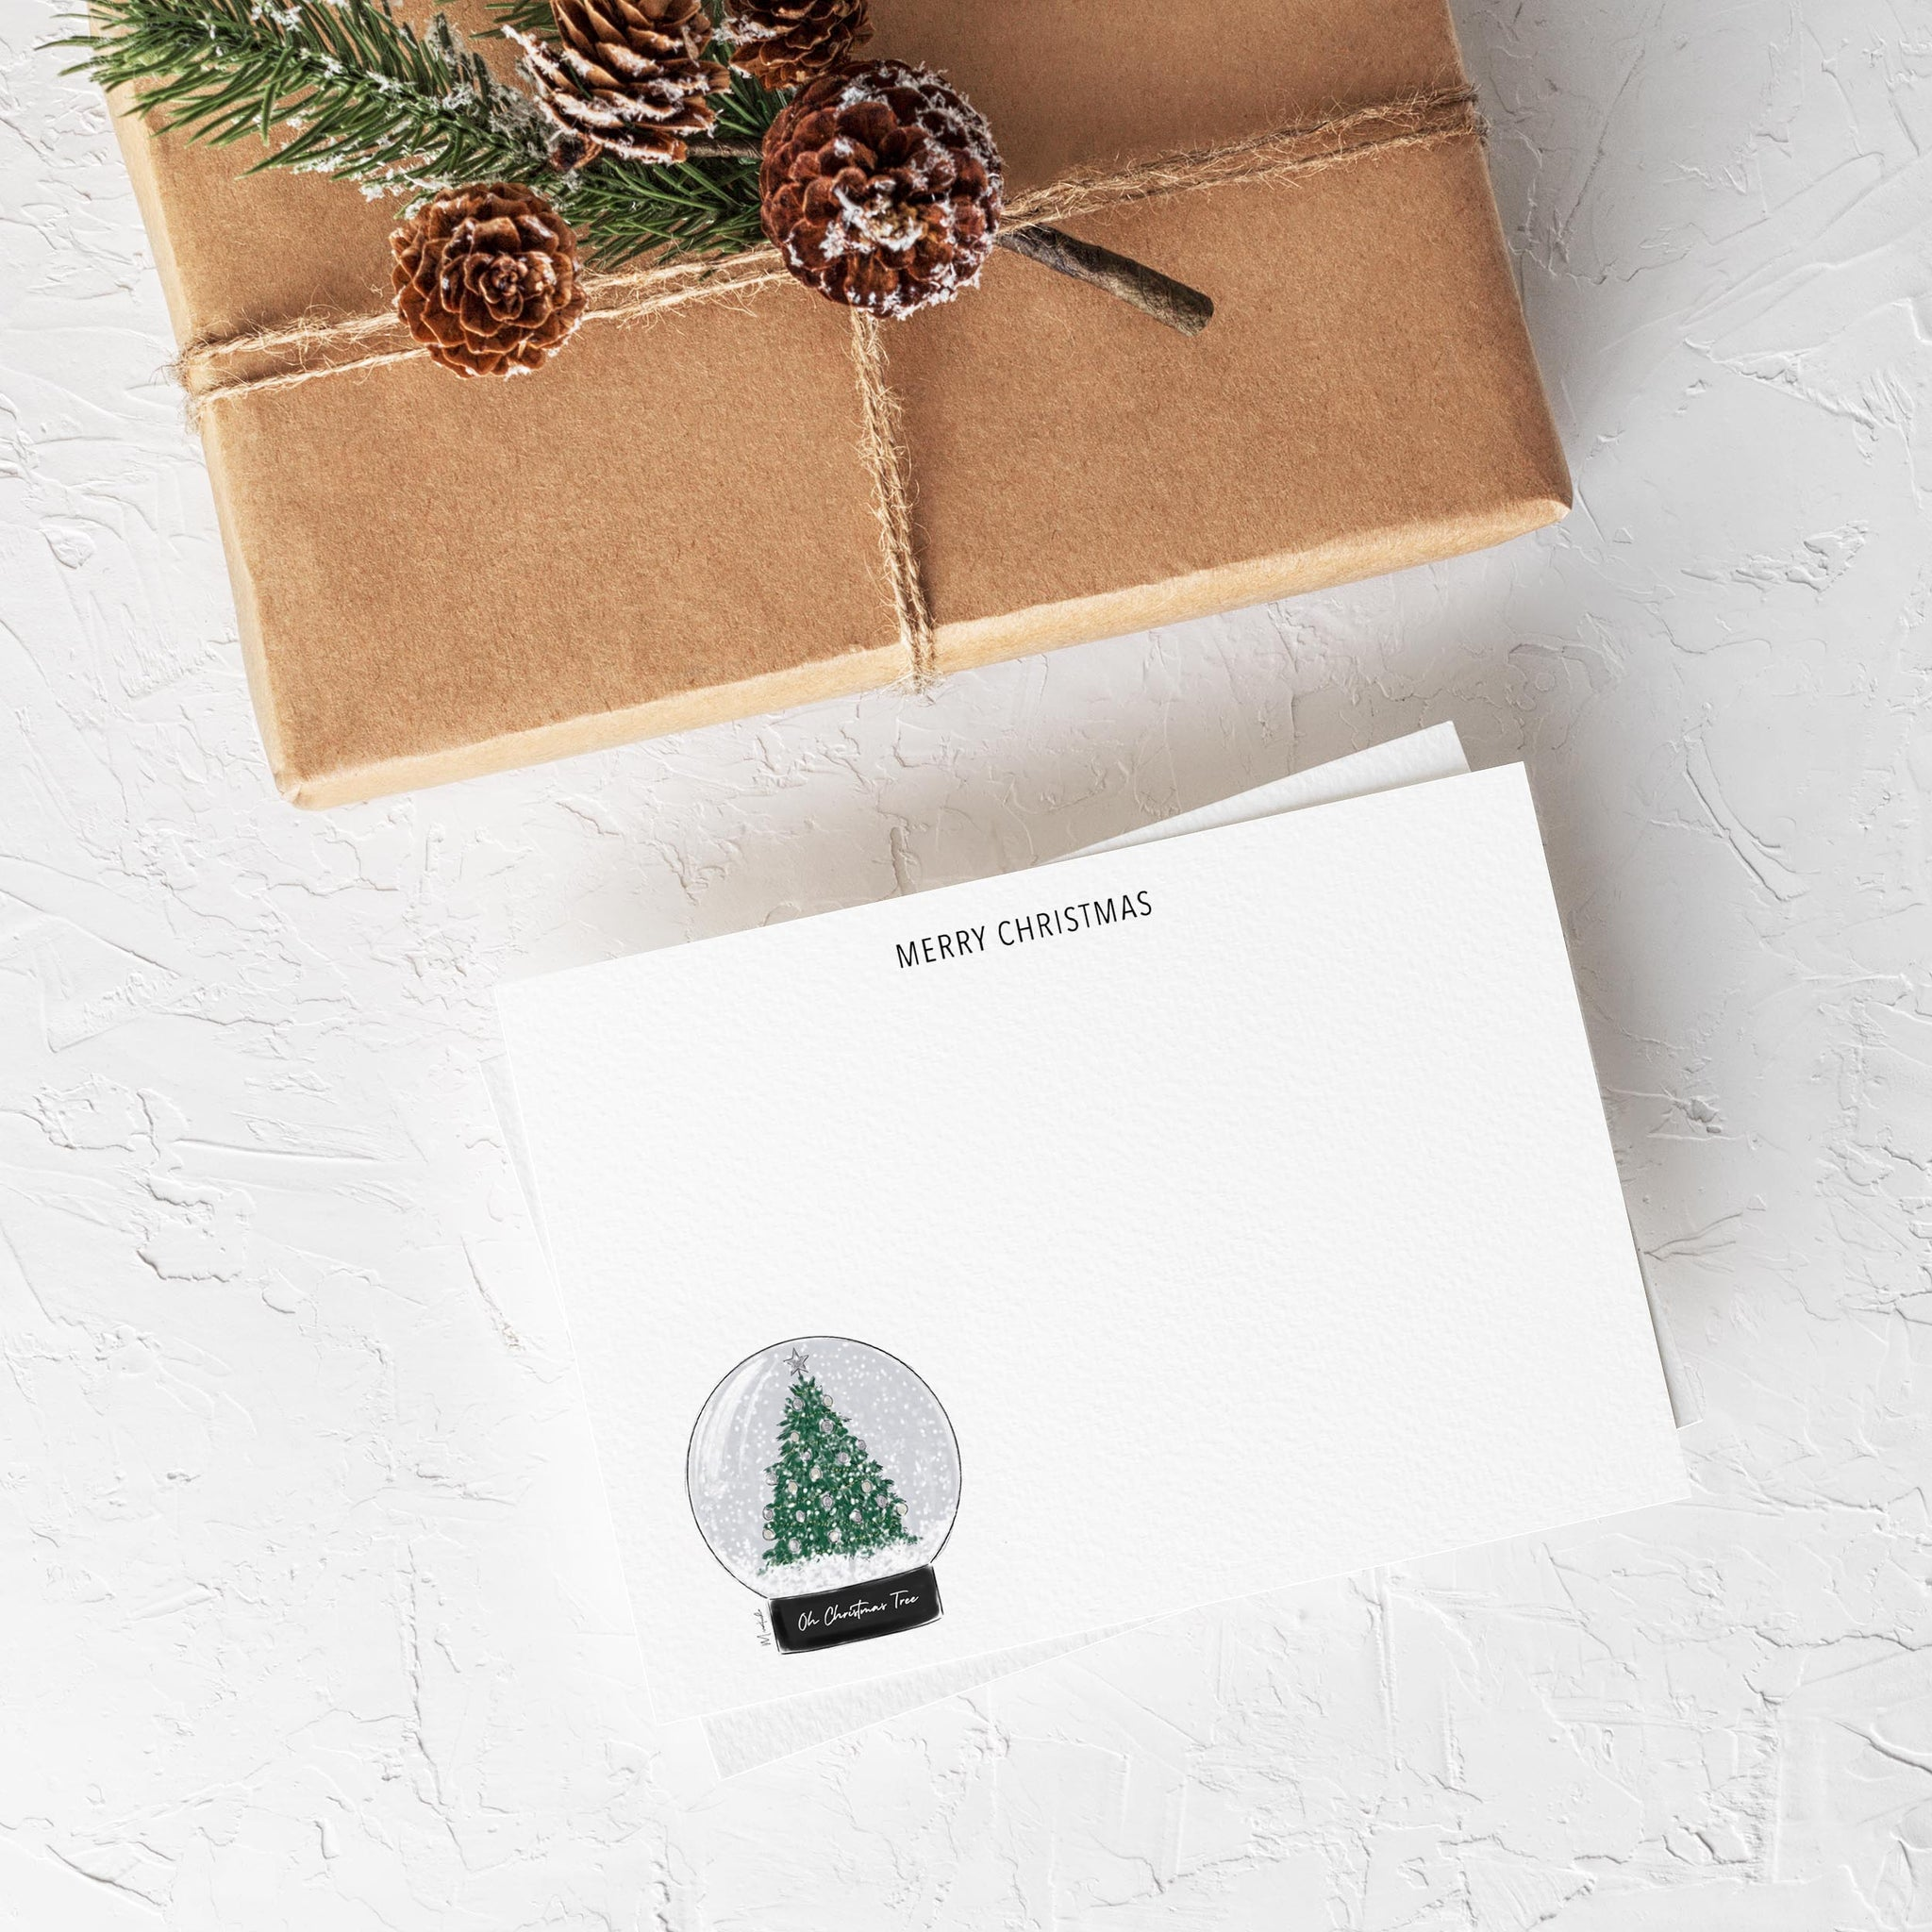 Oh Christmas Tree Snow Globe Stationery Set (personalize name)